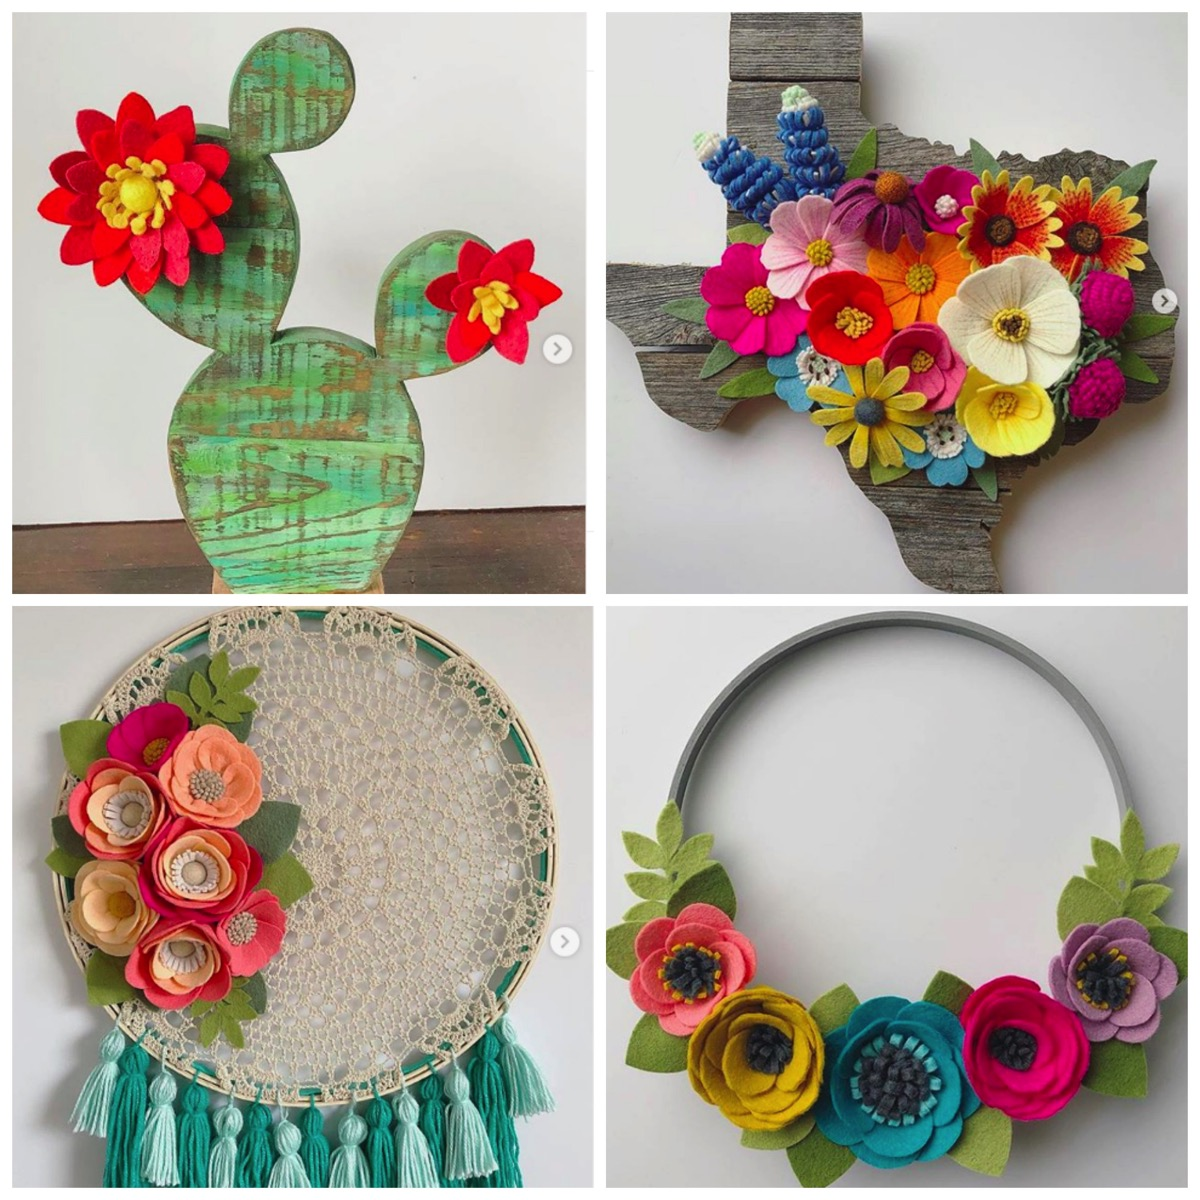 Colorful home decor flower wreath by clemmy lou designs